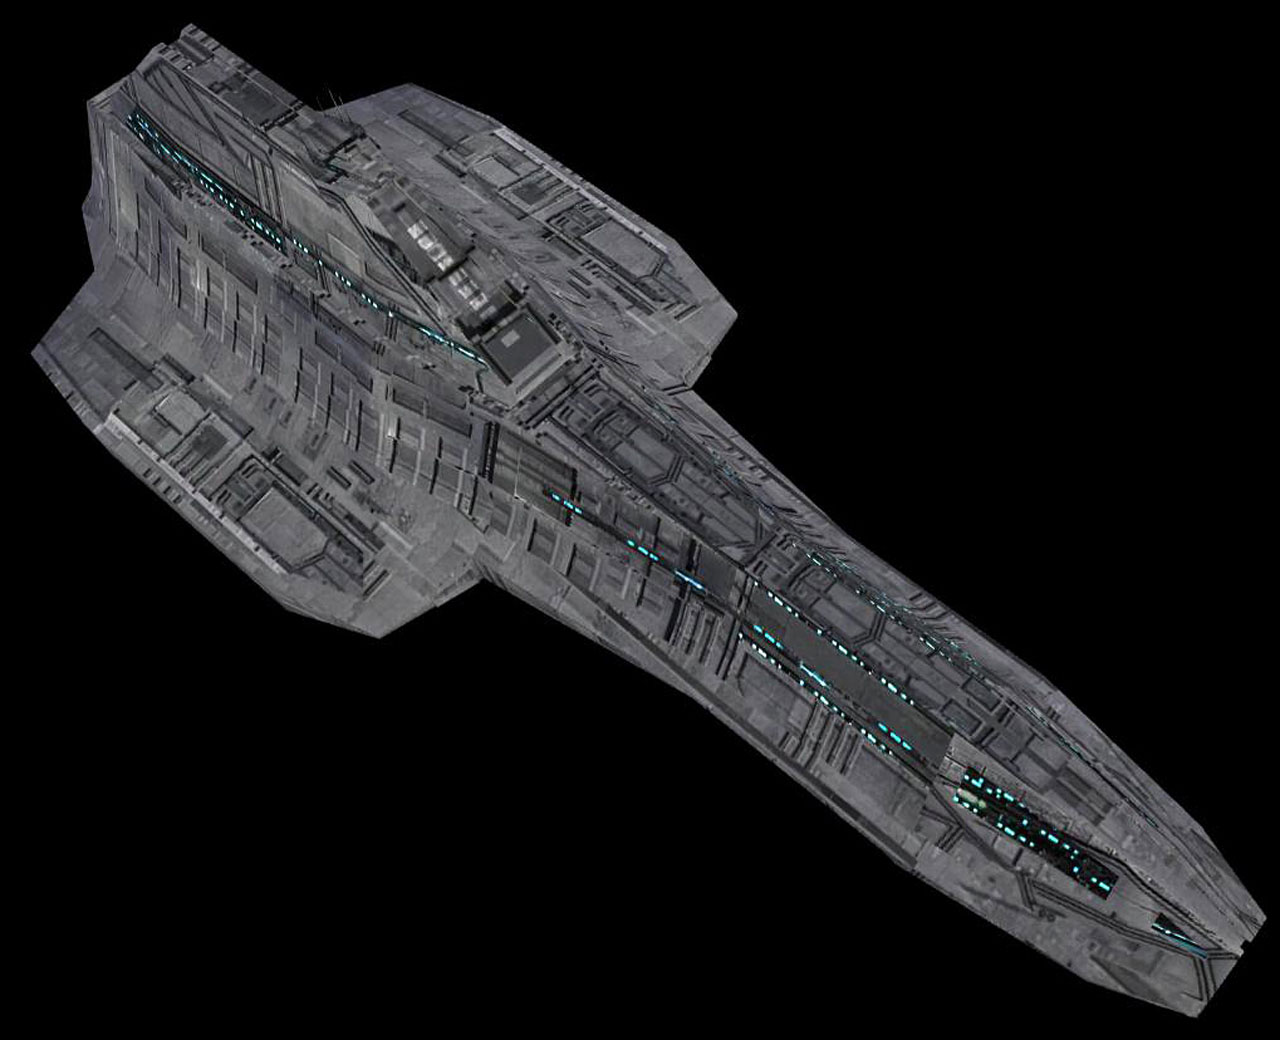 Alliance War Wars Ships Star Empire